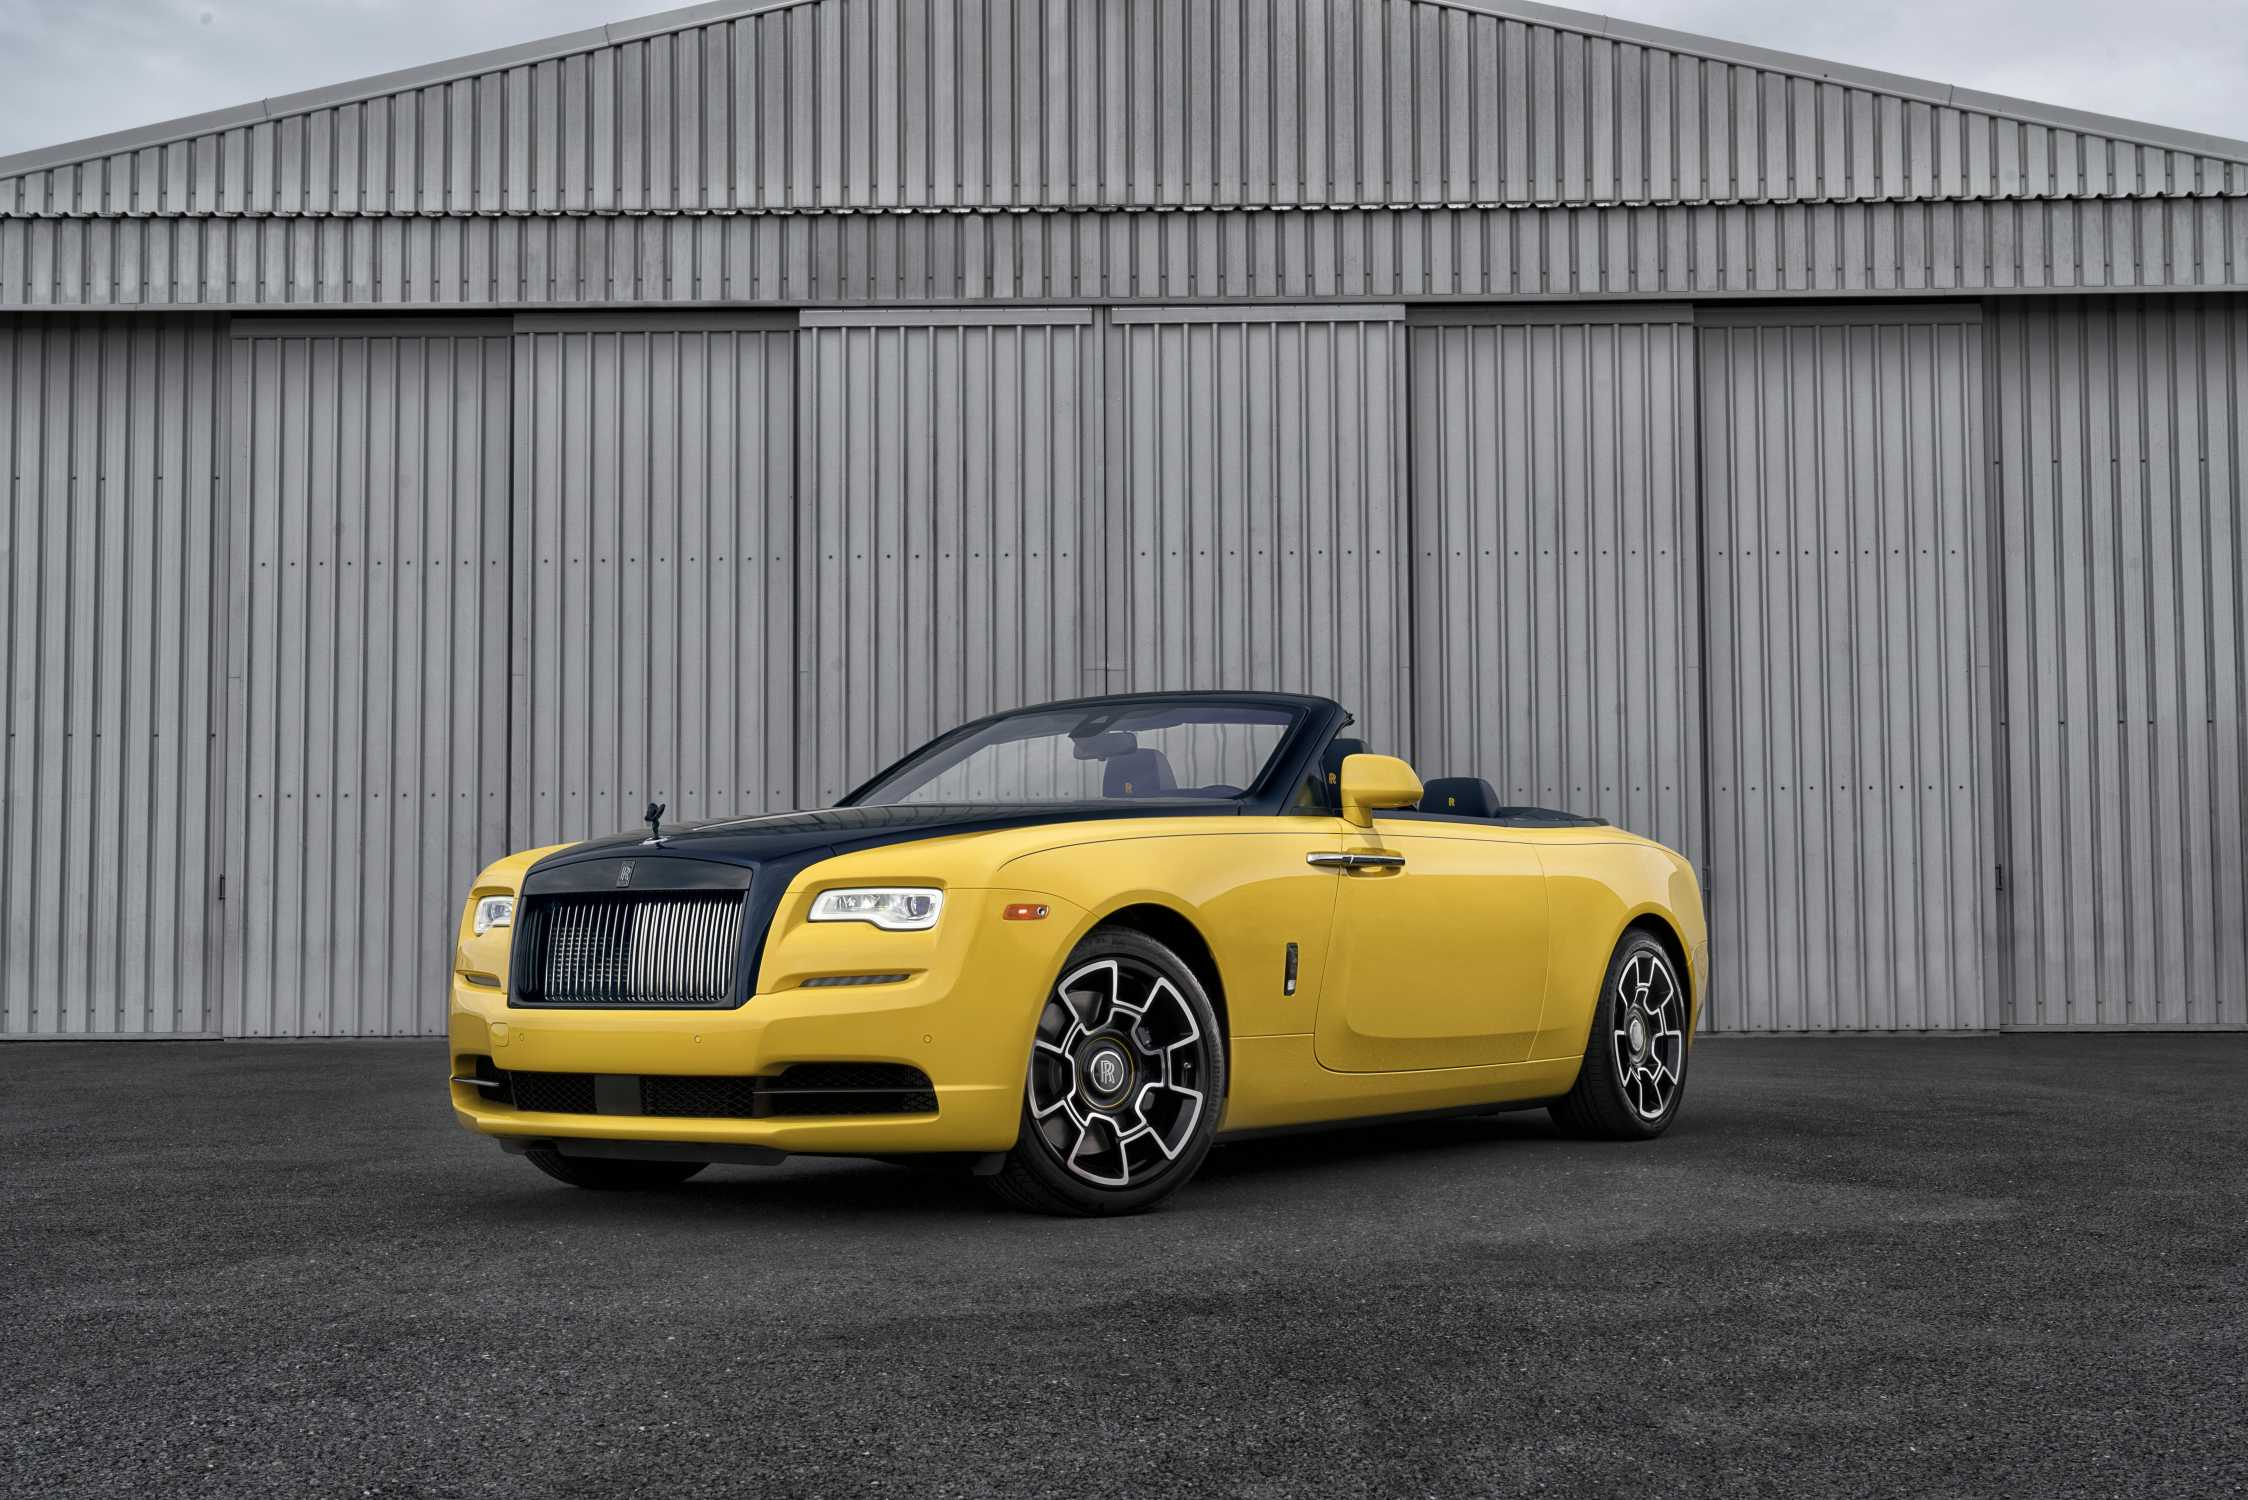 Silicon Valley Tech Executive Takes Delivery Of Bespoke Rolls Royce Dawn Black Badge At Pebble Beach